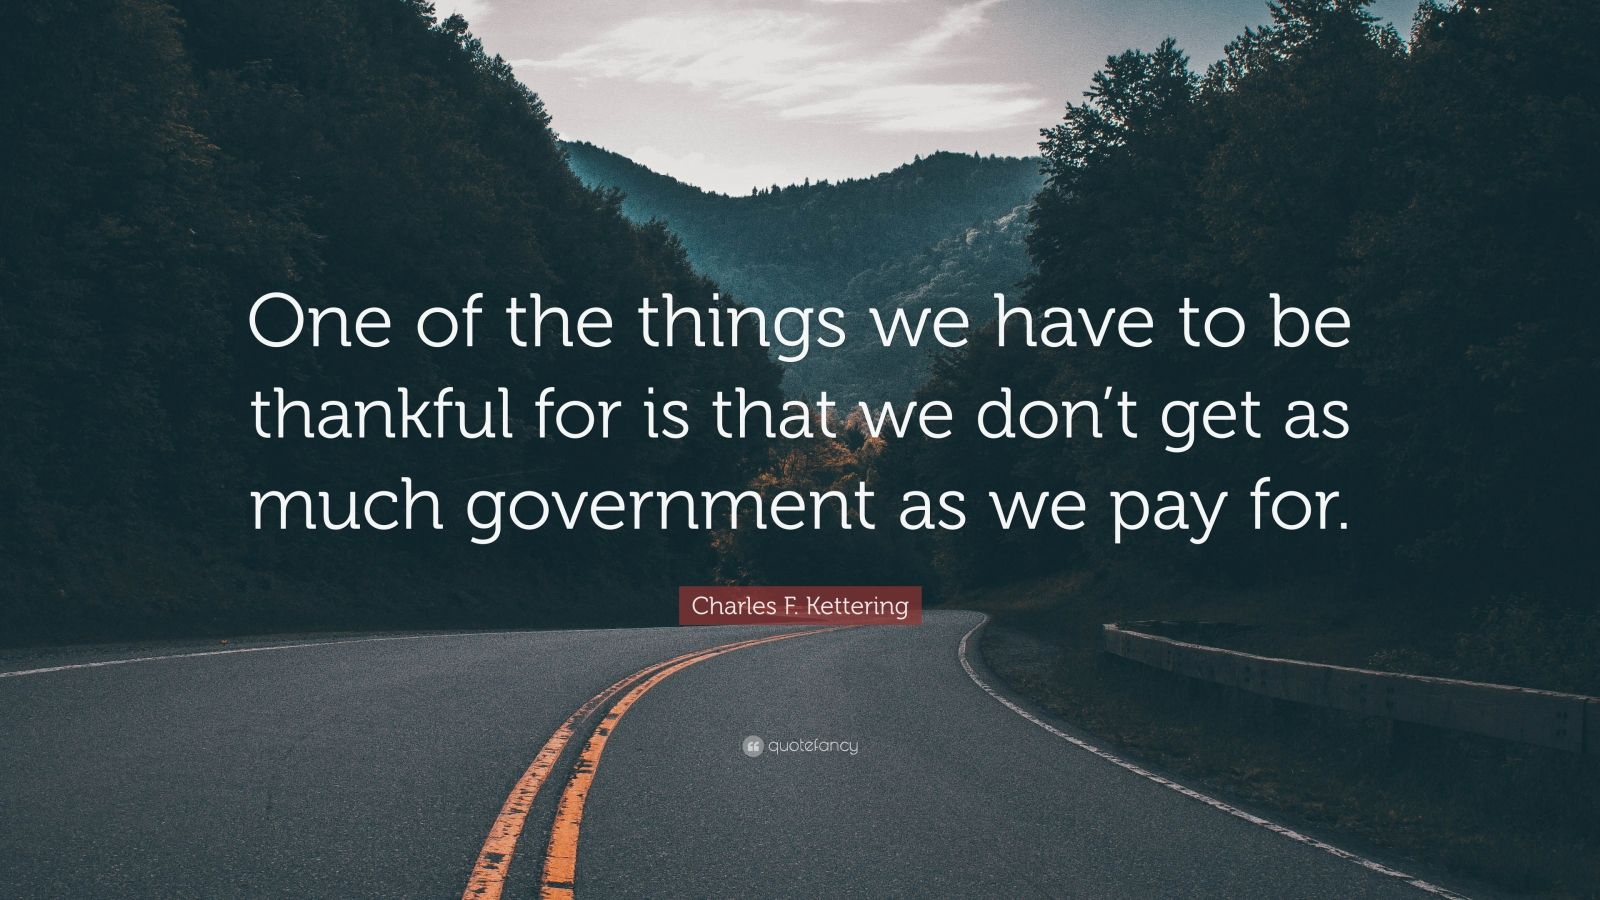 """Charles F. Kettering Quote: """"One of the things we have to be thankful for is that we don't get as much government as we pay for."""""""